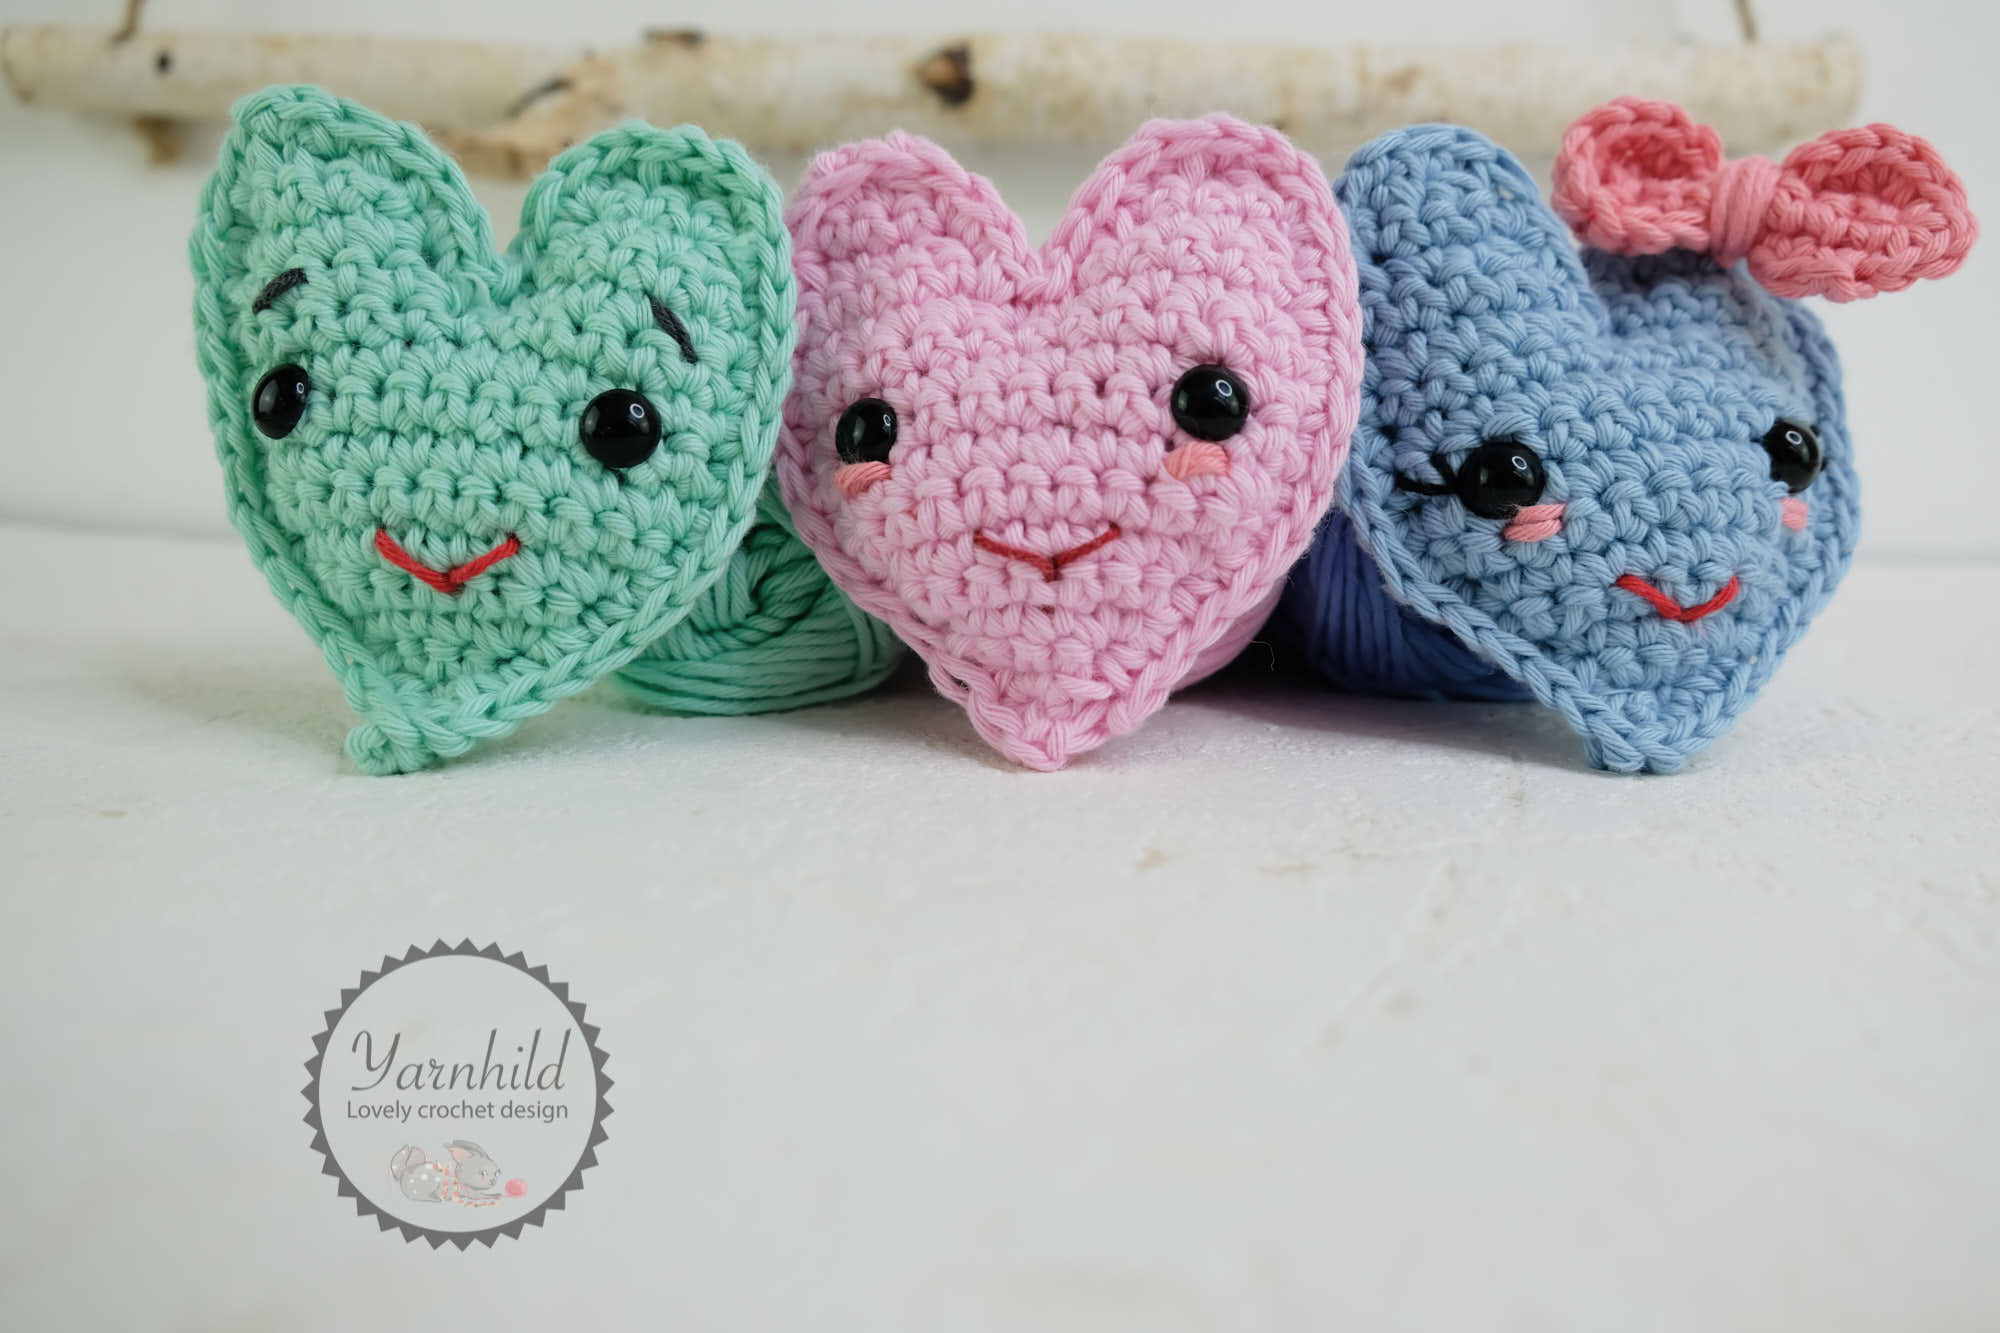 Crochet Heart by Yarnhild